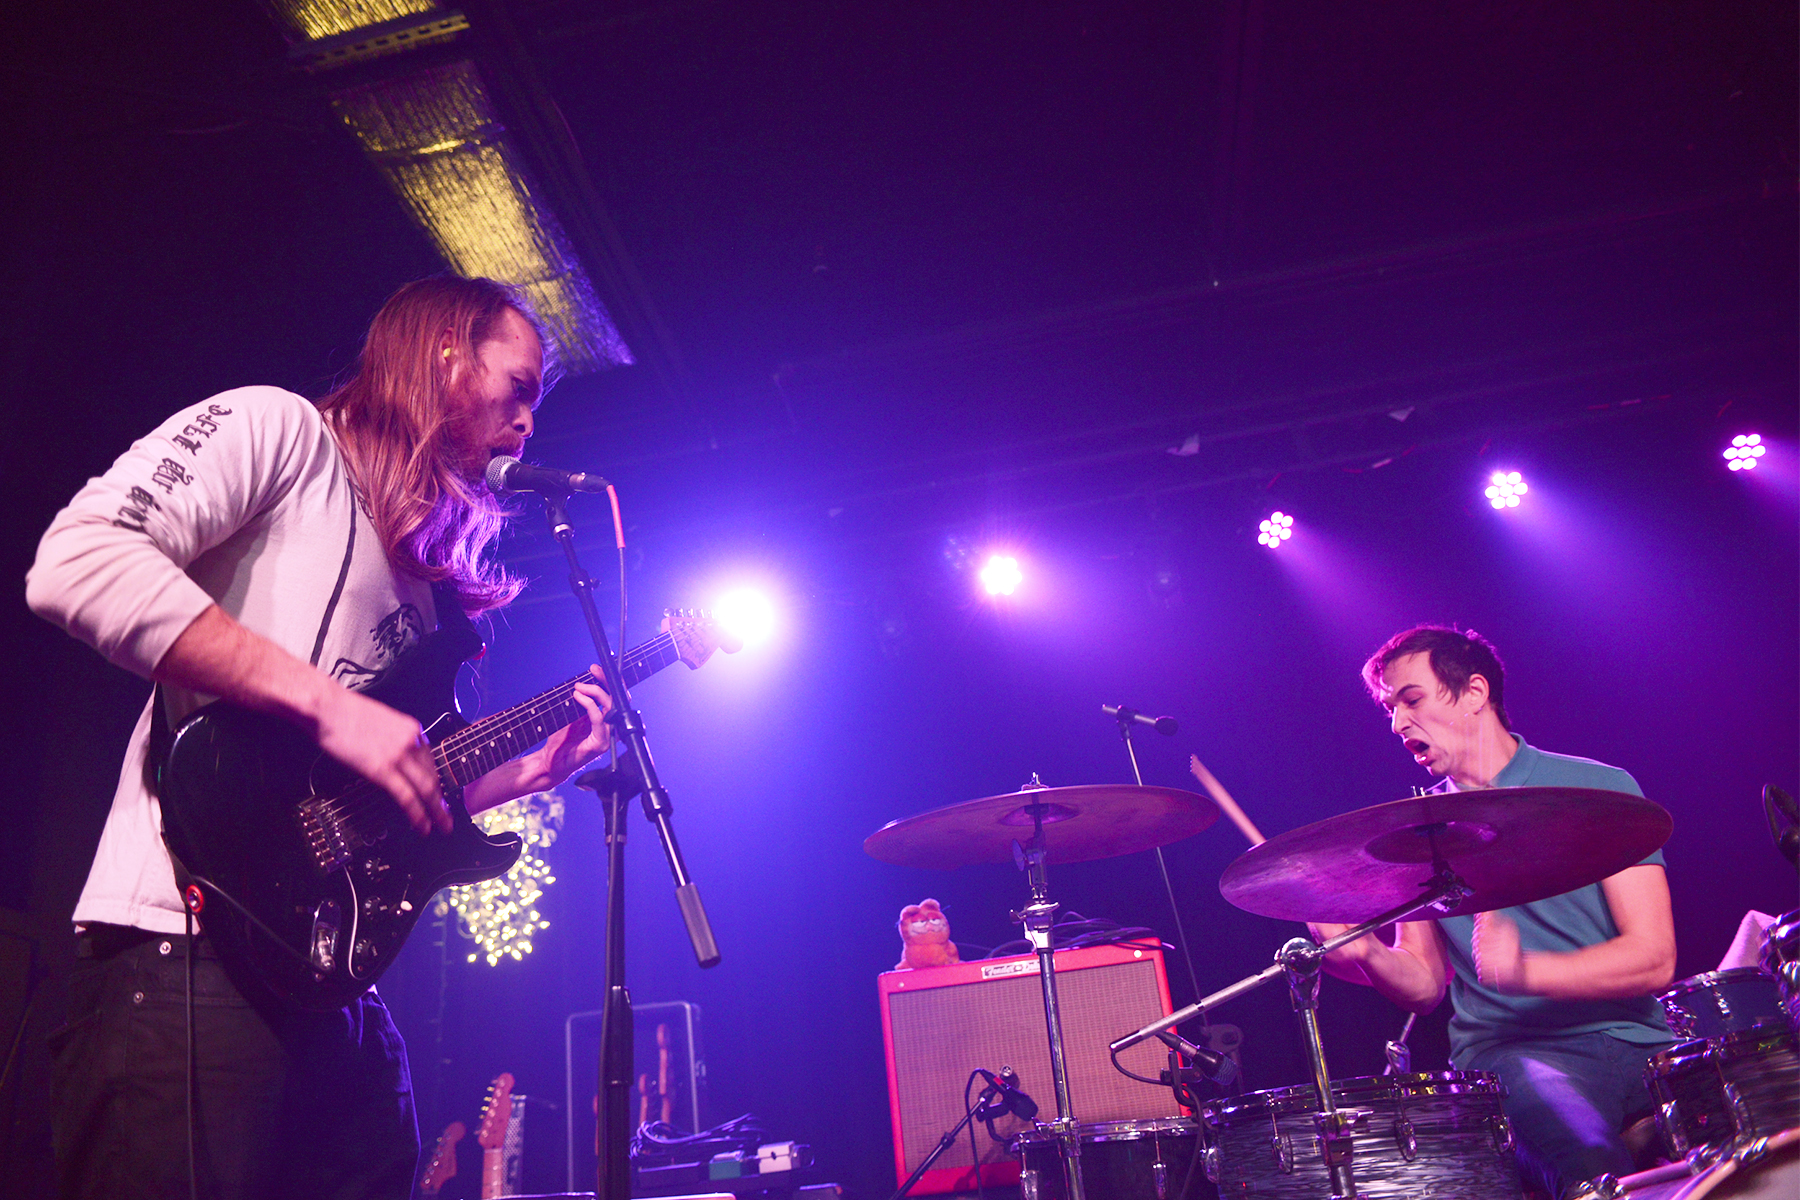 REVIEW: Bully w/ Music Band & Watcher   2.11.16 @ The Basement East